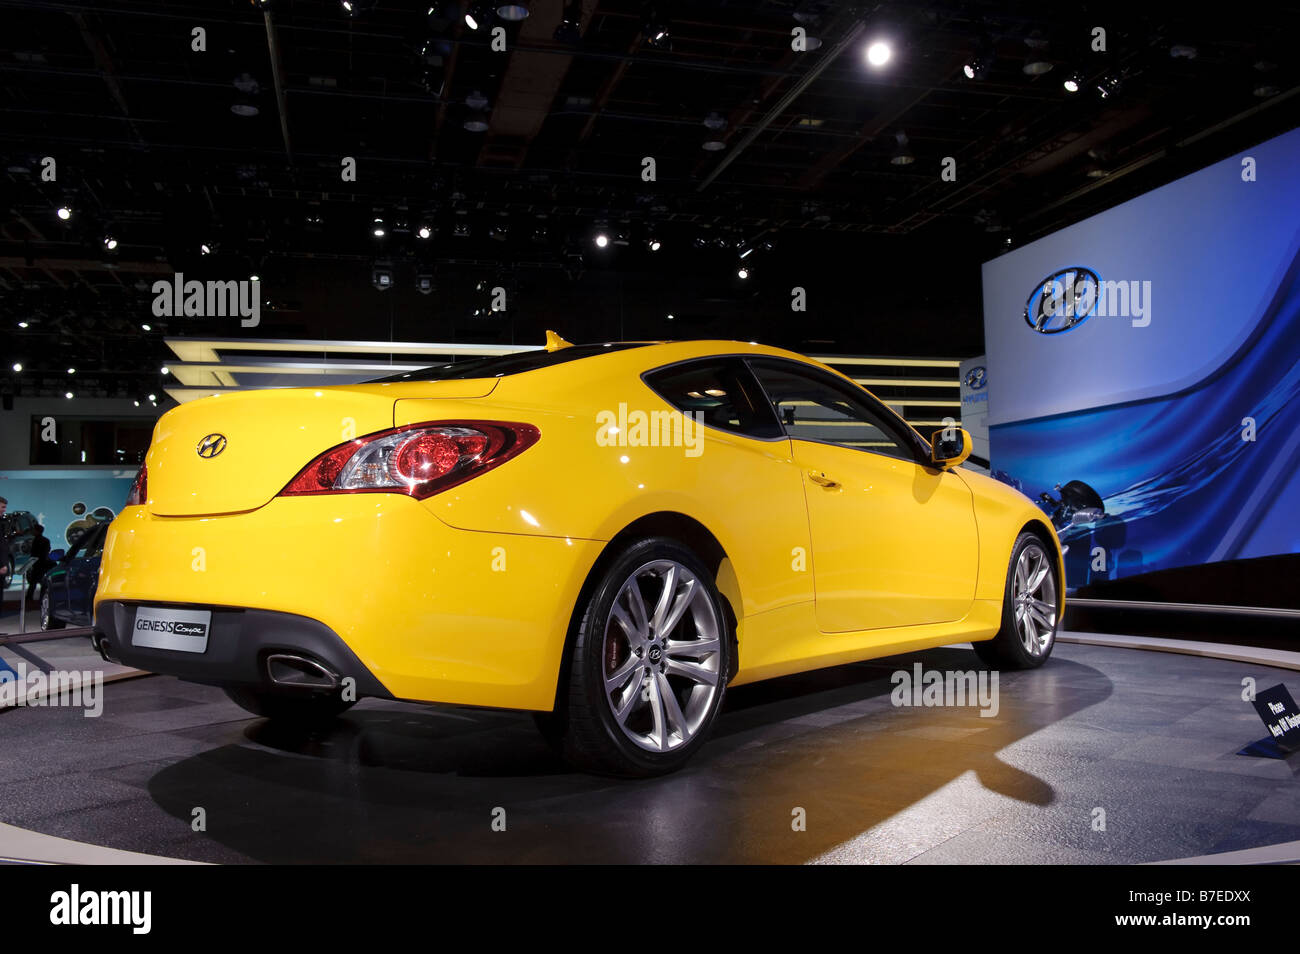 2009 Hyundai Genesis Coupe At The 2009 North American International Auto  Show In Detroit Michigan USA.